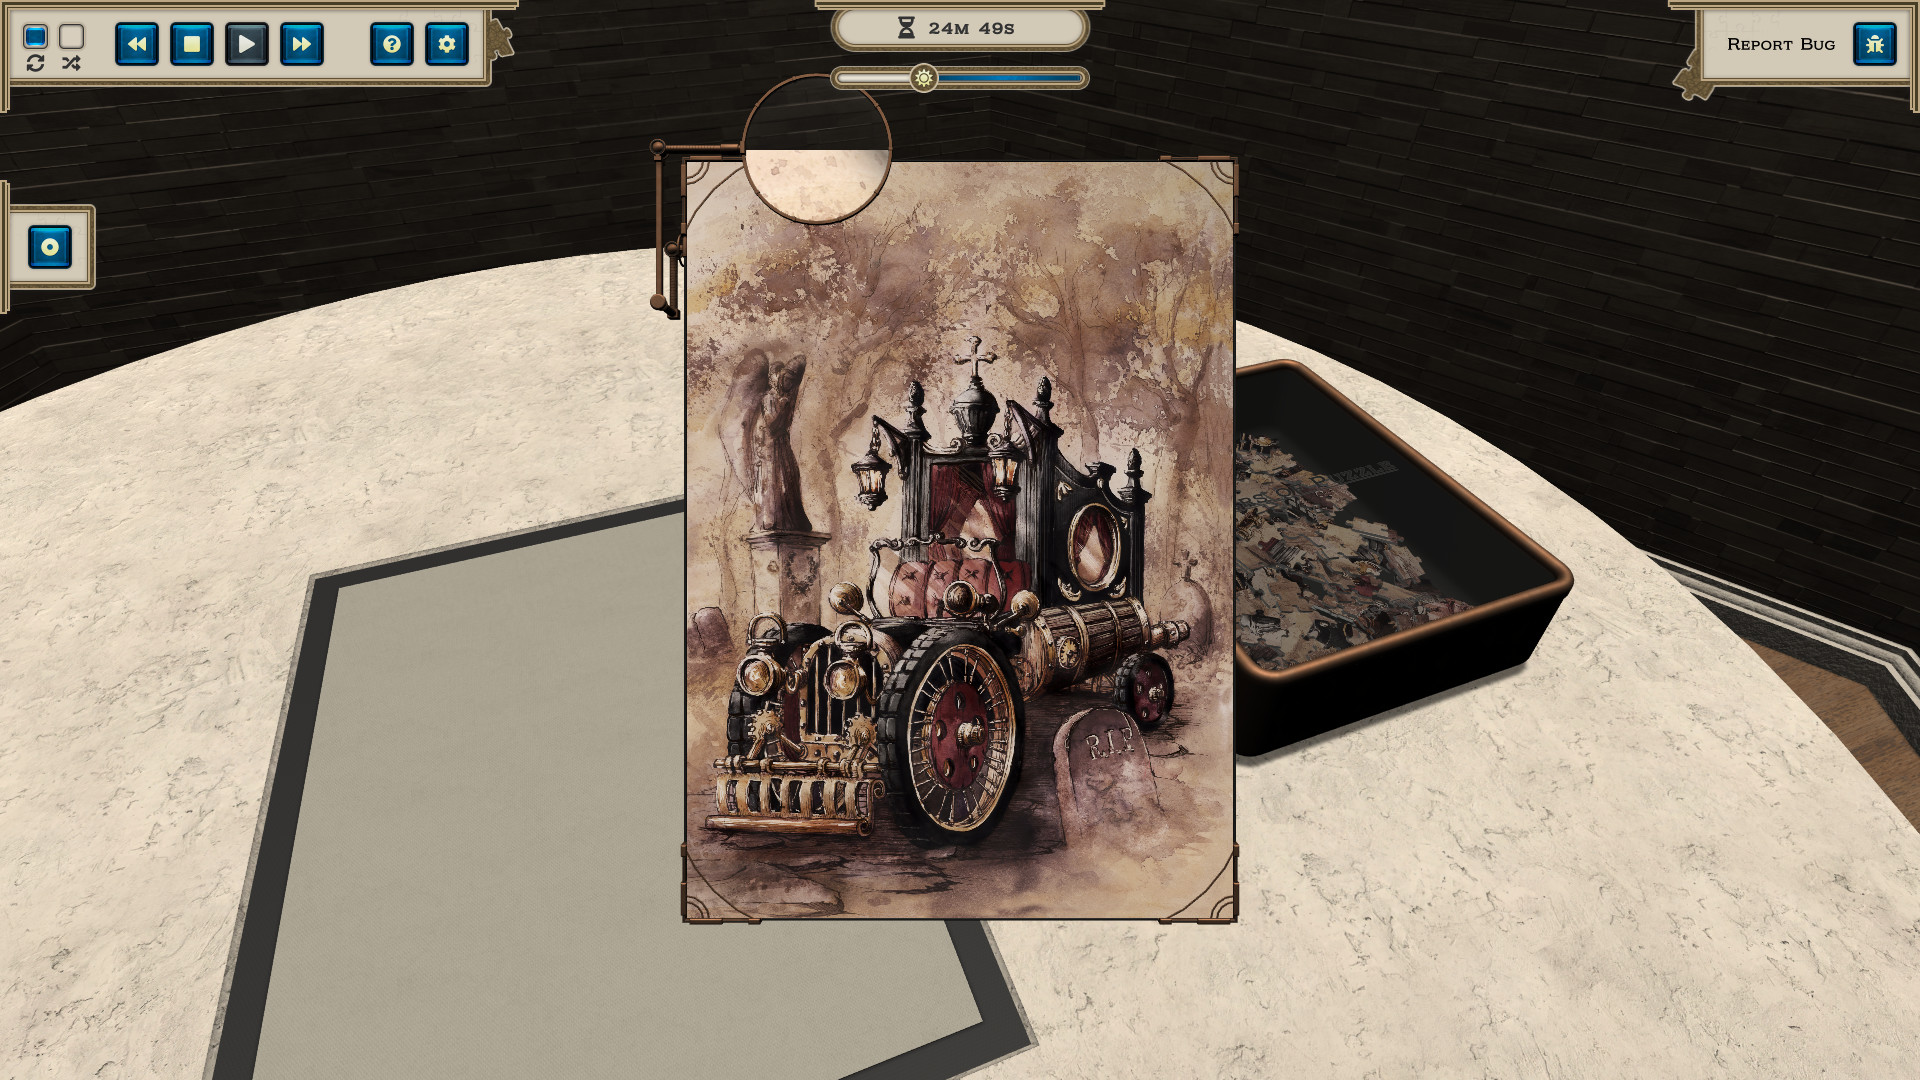 Masters of Puzzle - Steampunk Hearse screenshot